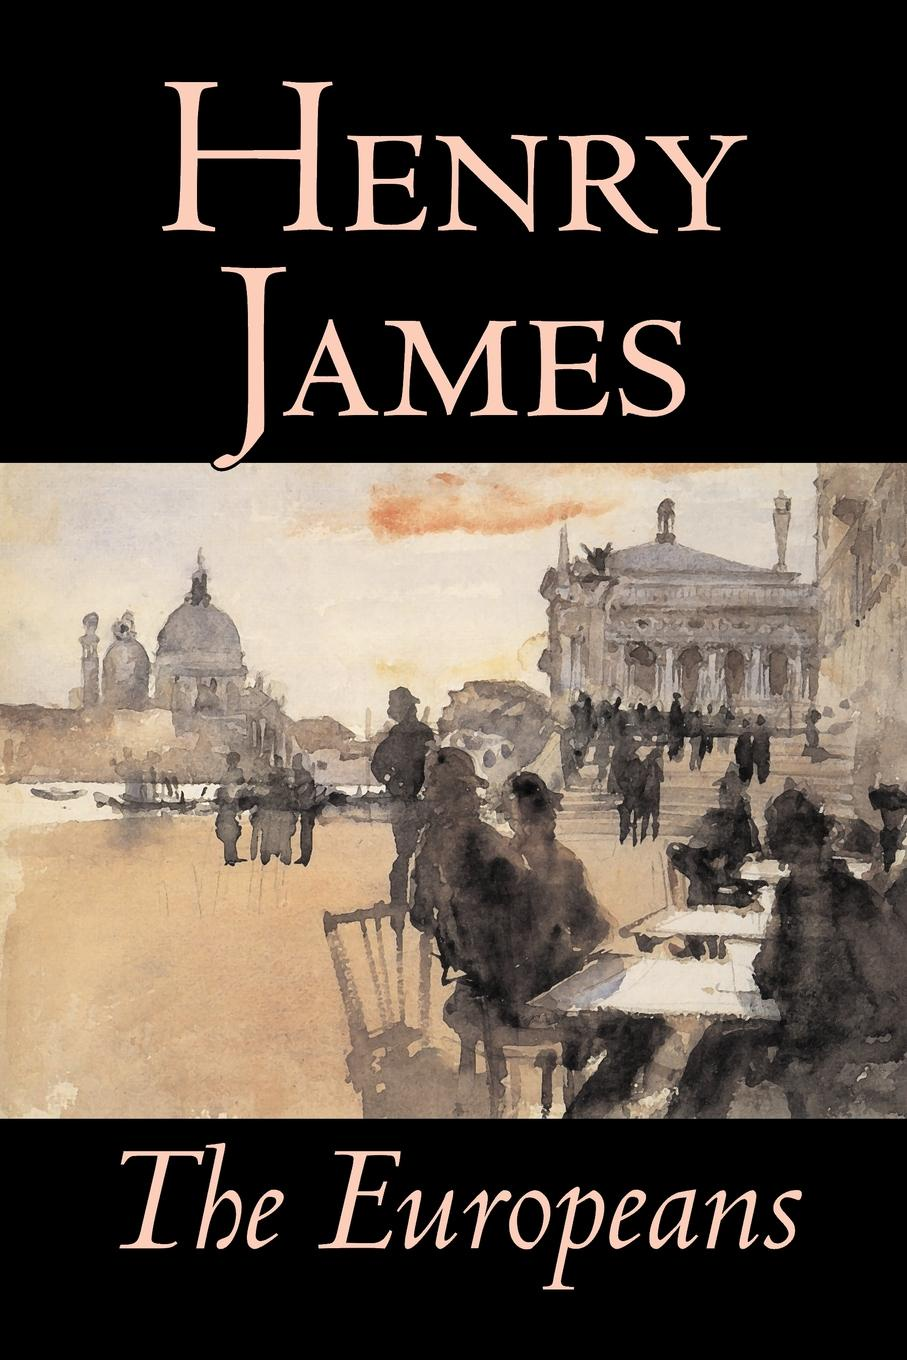 Henry James The Europeans by Henry James, Fiction, Classics henry james the ivory tower by henry james fiction classics literary